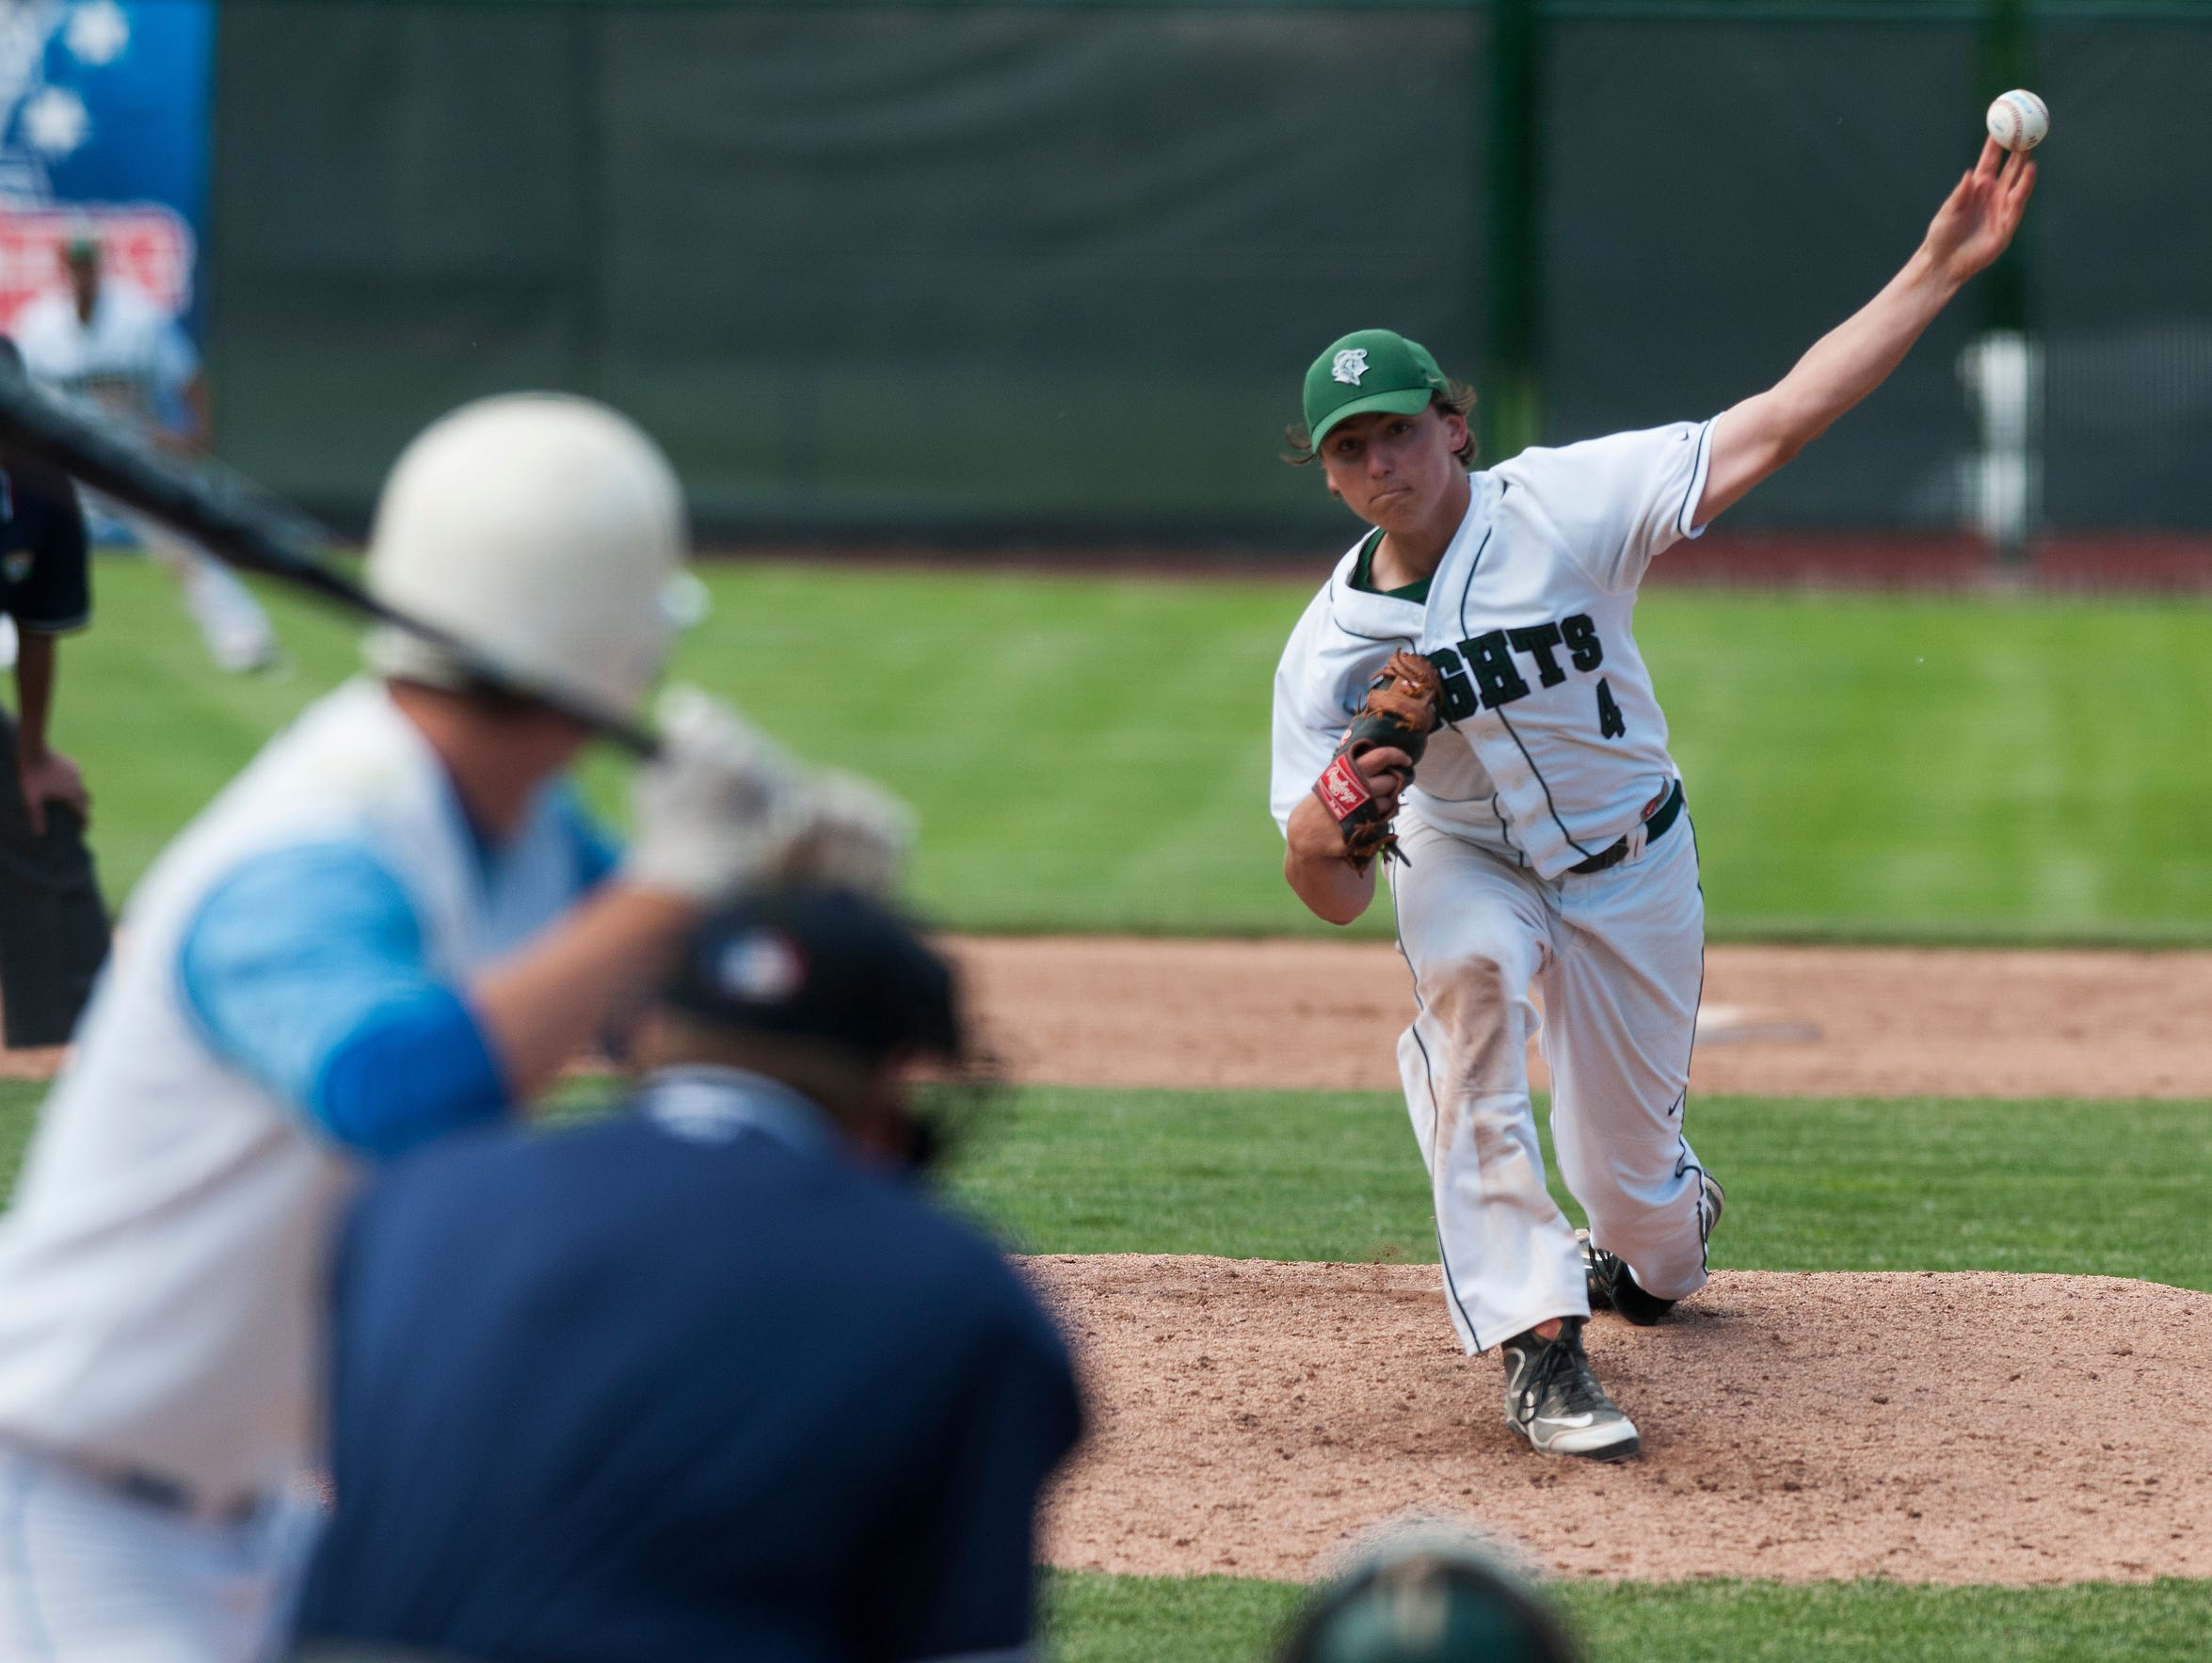 Rice pitcher Will Hesslink (4) delivers a pitch during